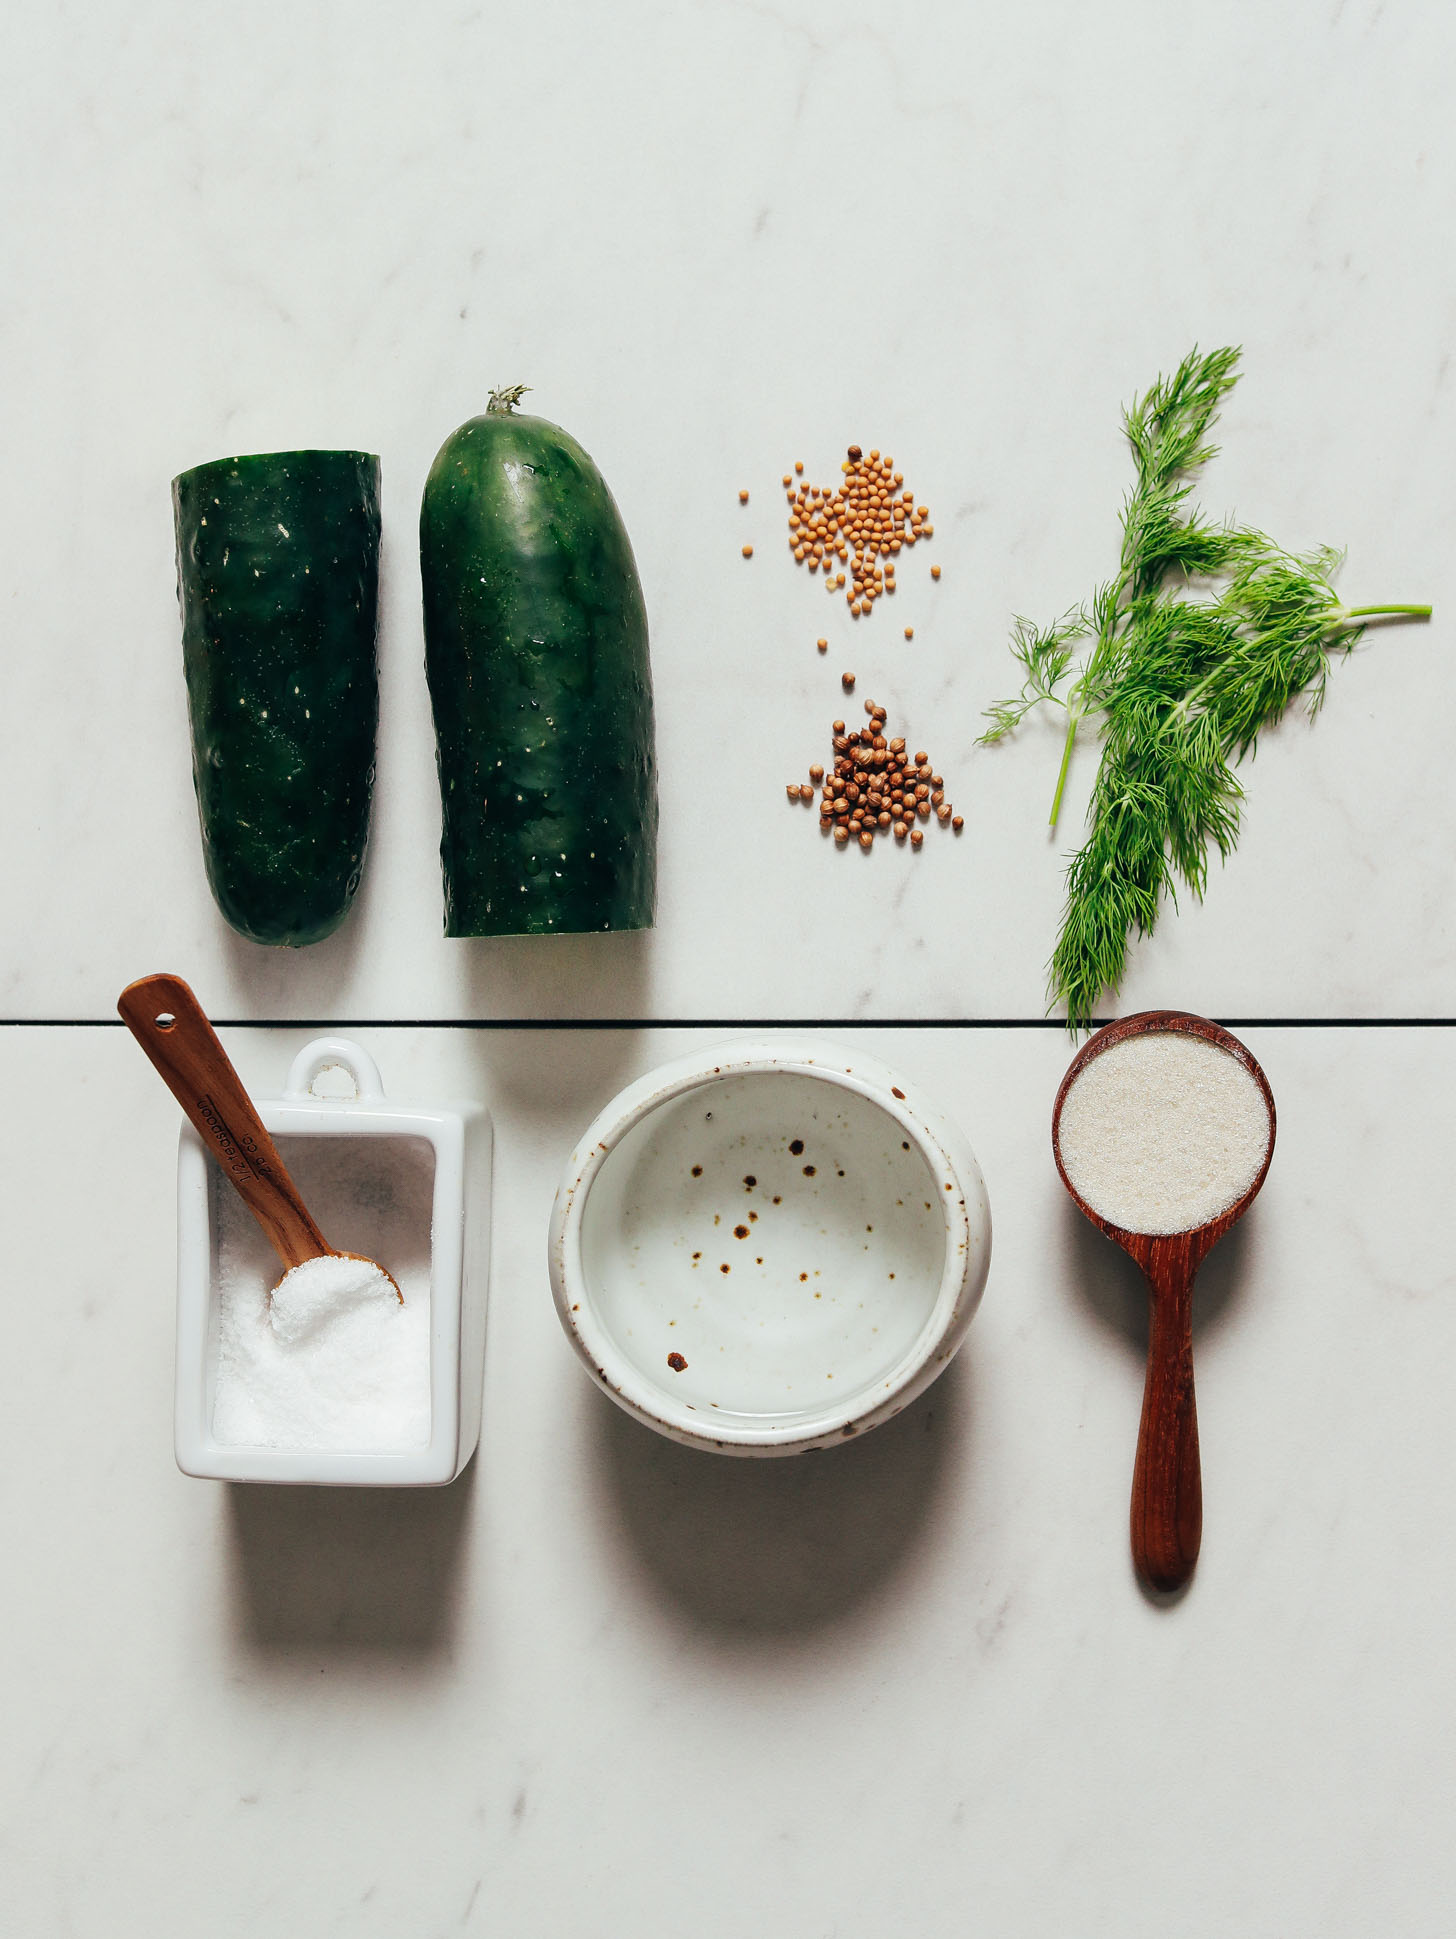 Cucumber, dill, mustard seeds, coriander seeds, and other ingredients for making Refrigerator Pickles